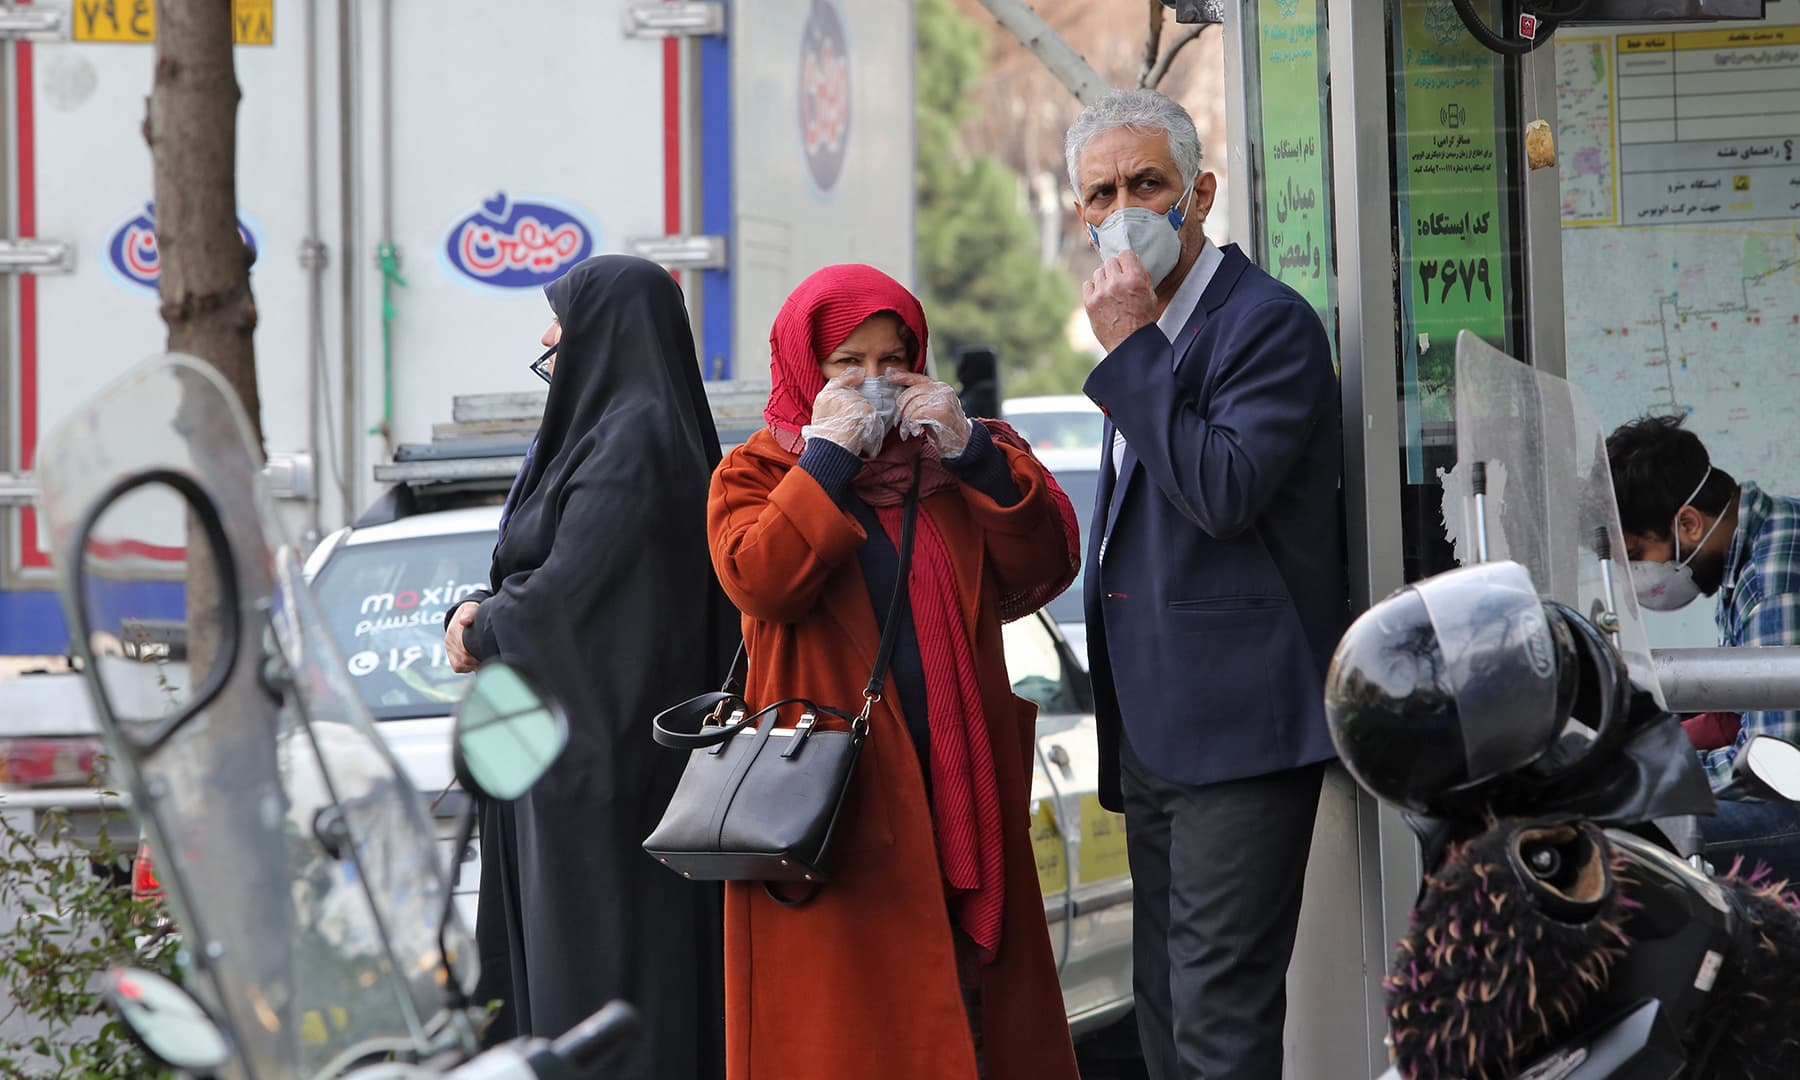 People wearing protective masks wait along the side of a street in the Iranian capital on Feb 24. — AFP